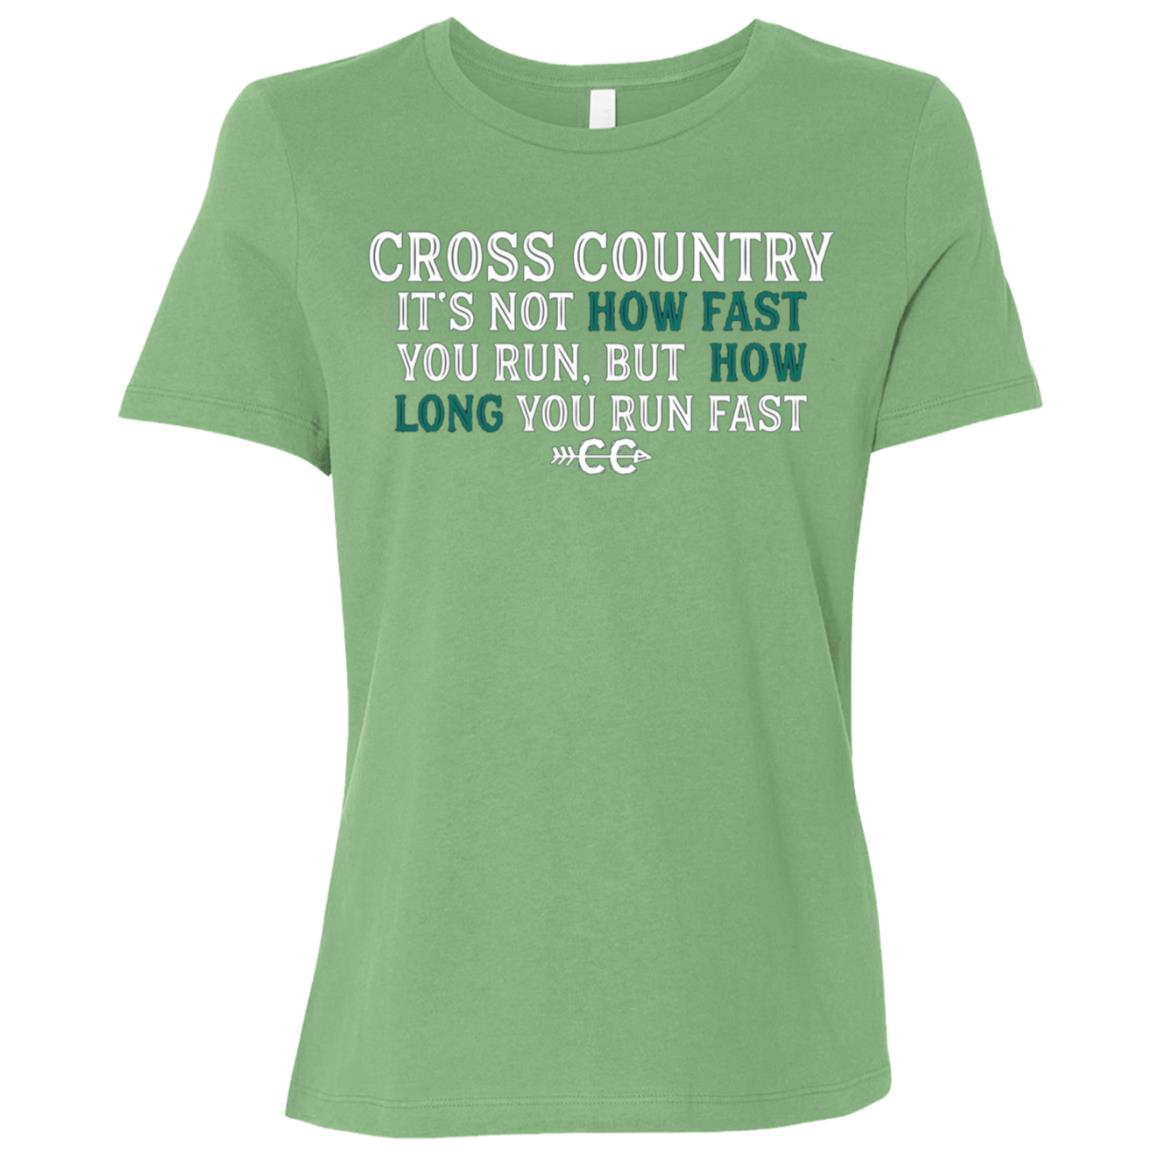 Cross Country Runnings – Funny Cross Country Running Women Short Sleeve T-Shirt